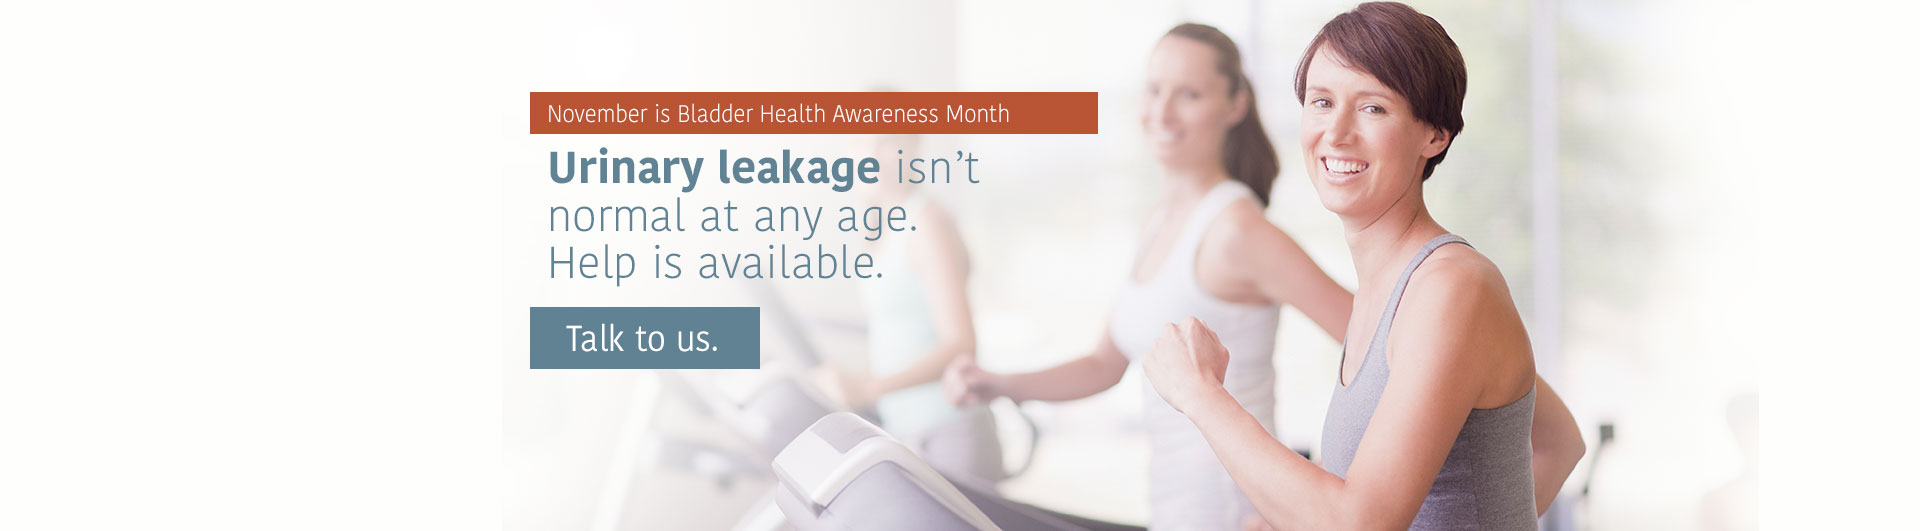 Bladder Health Awareness